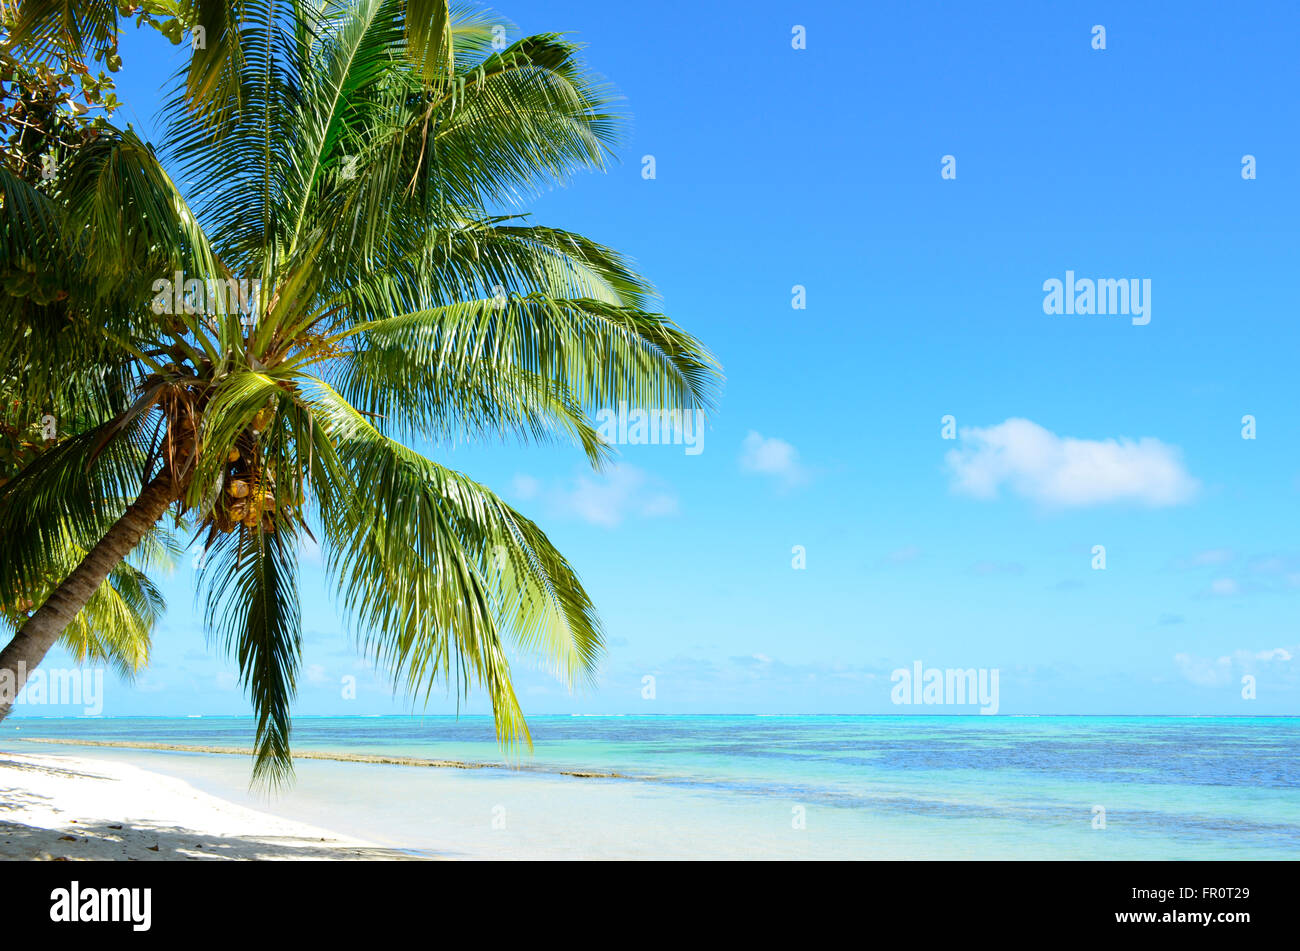 A coconut palm tree on a tropical white sand beach with a blue sea on Moorea, island of the Tahiti archipelago French - Stock Image